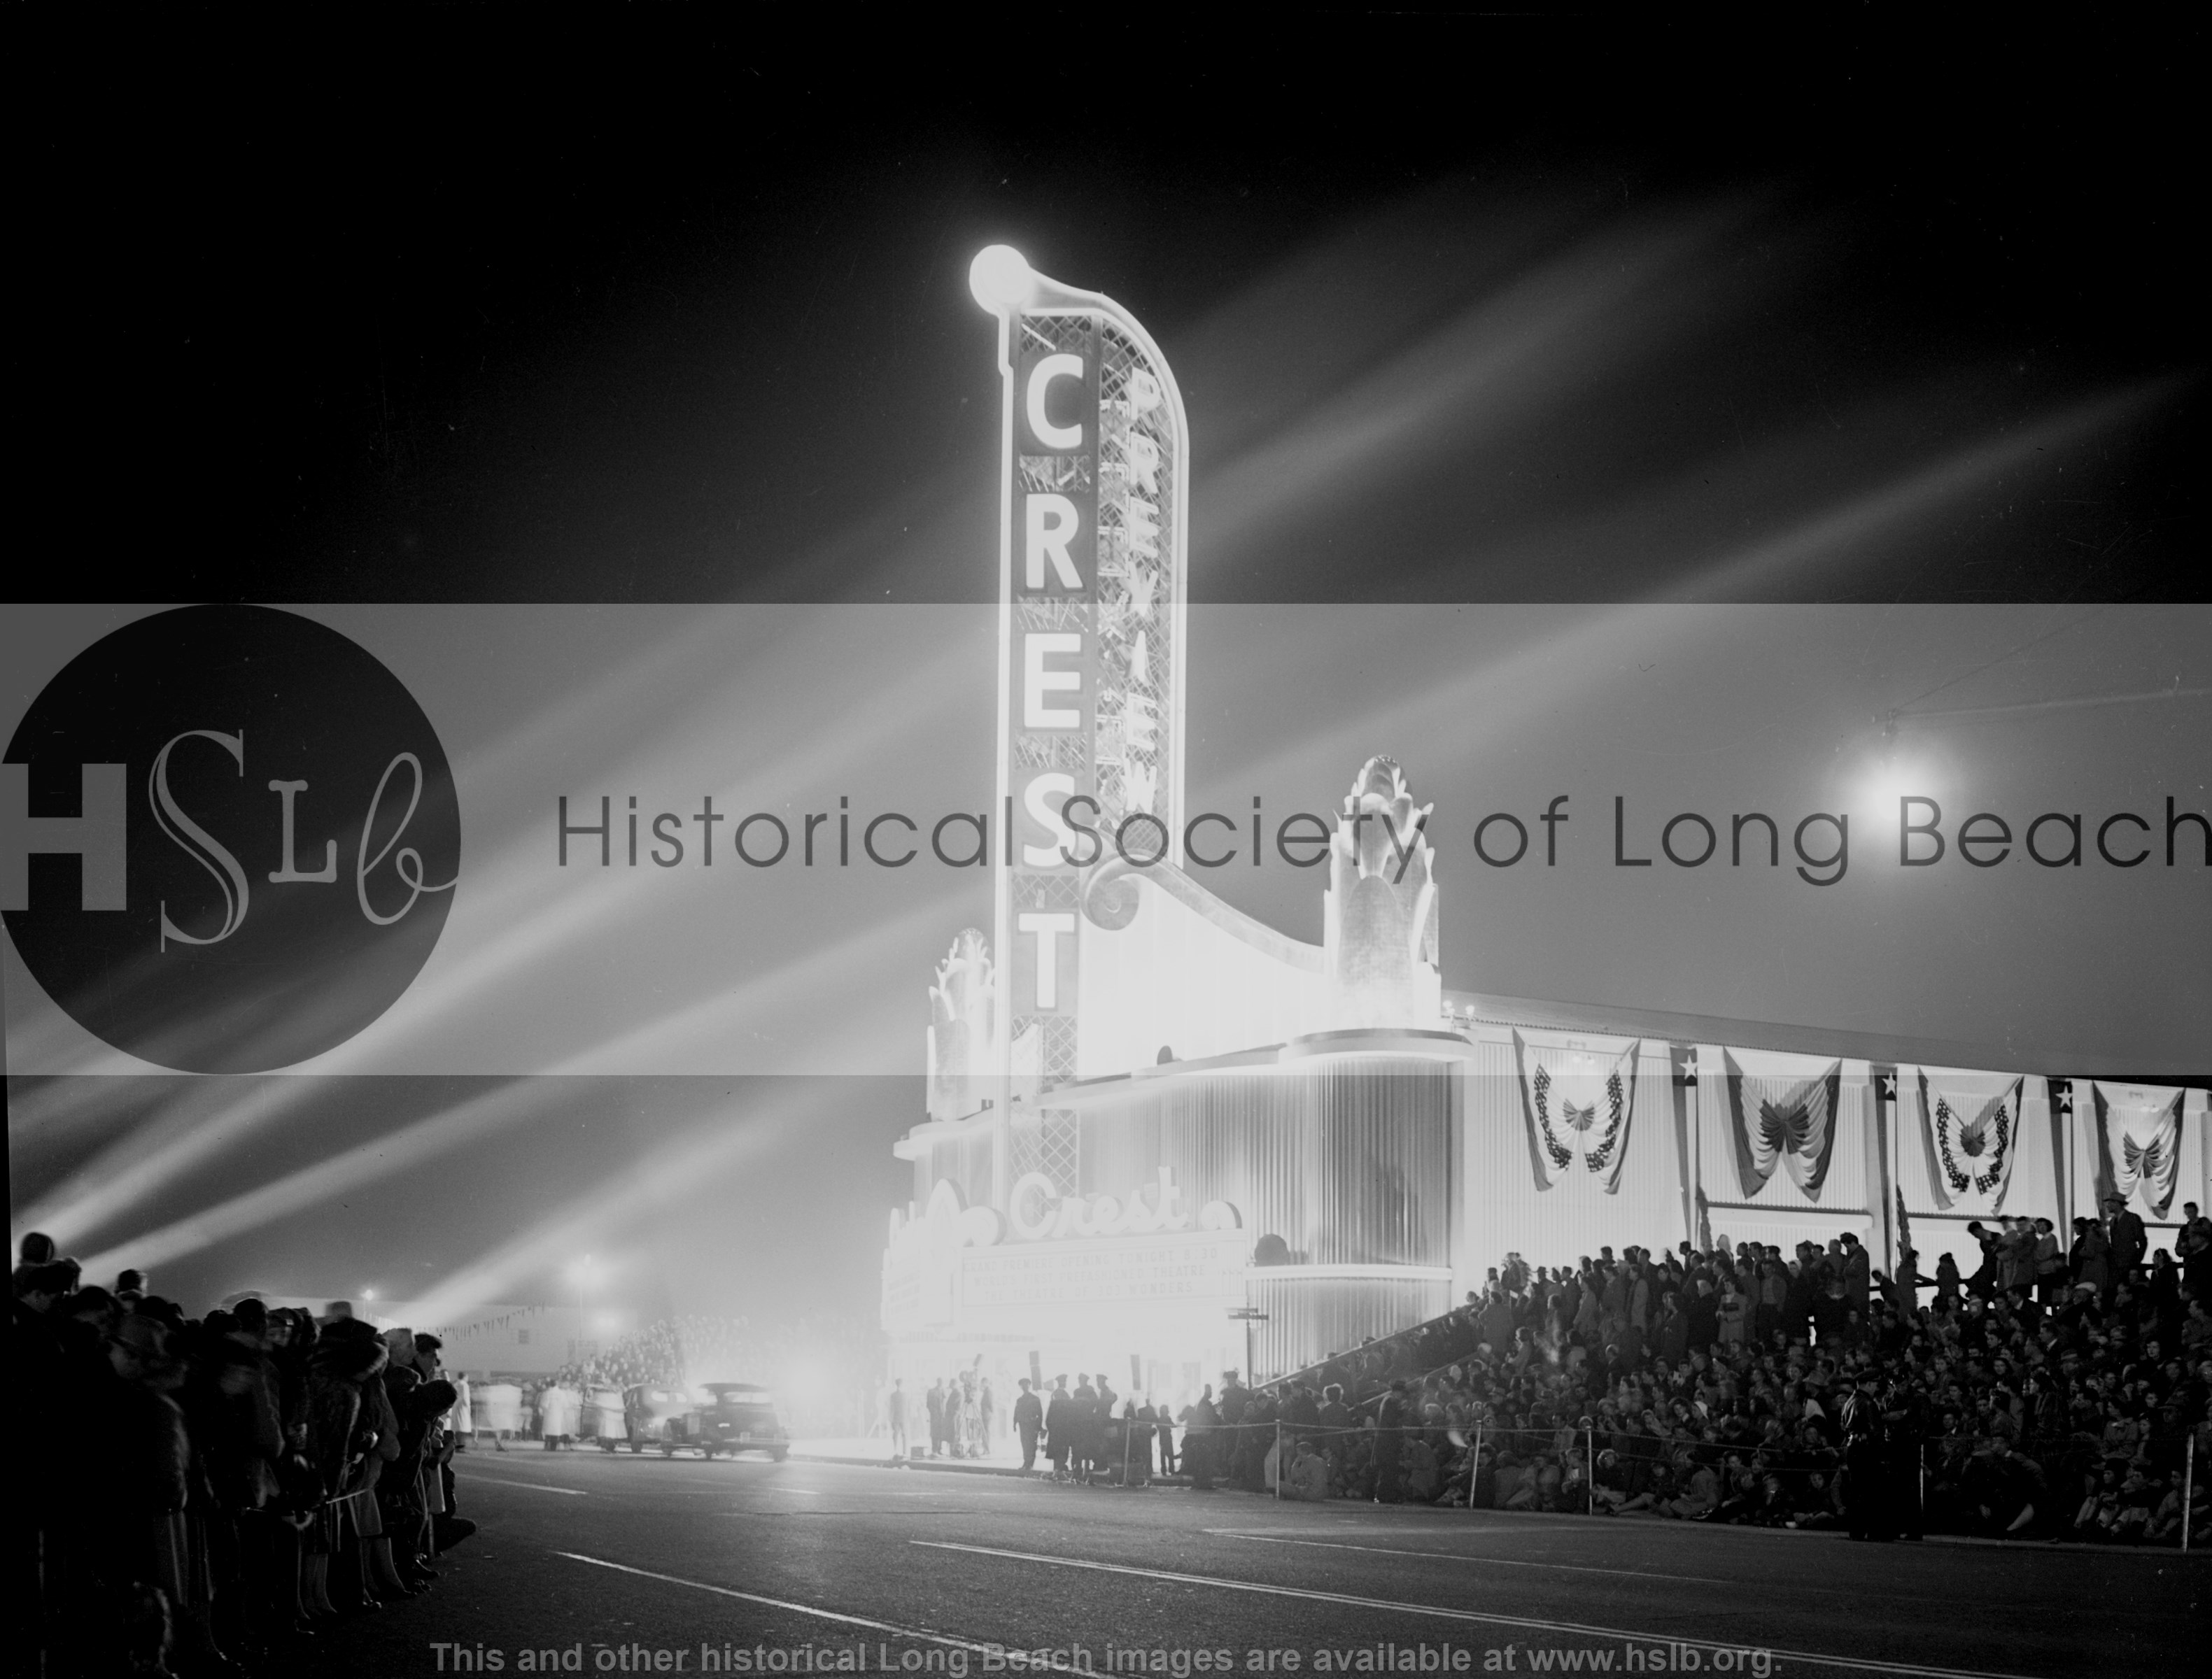 Crest Theatre opening, 1947 vintage photograph